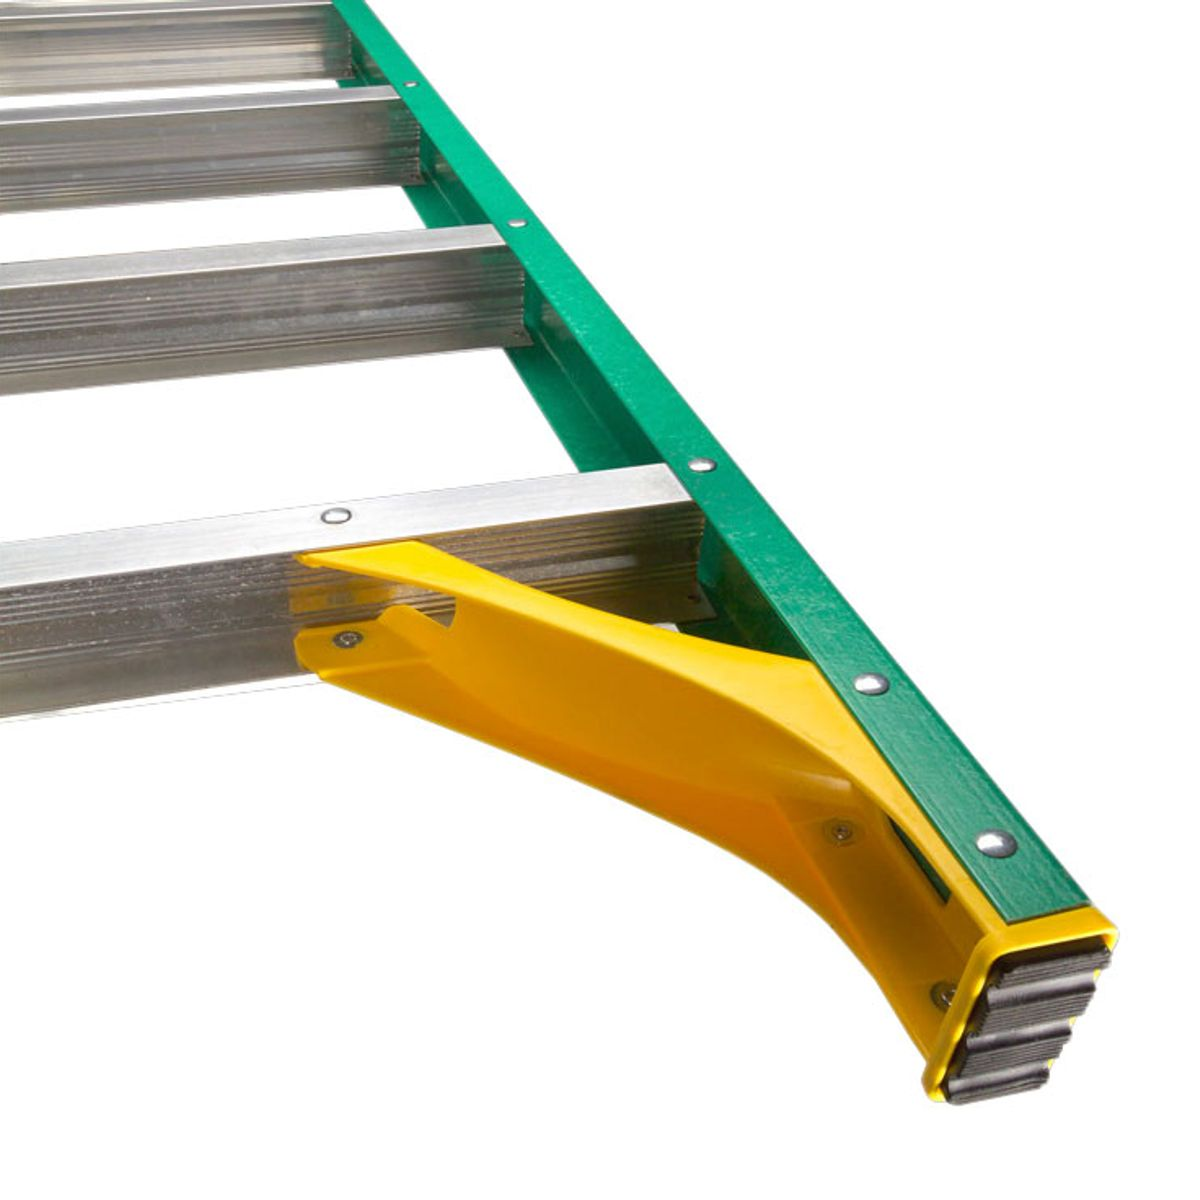 6-Foot Werner T6006 Ladder